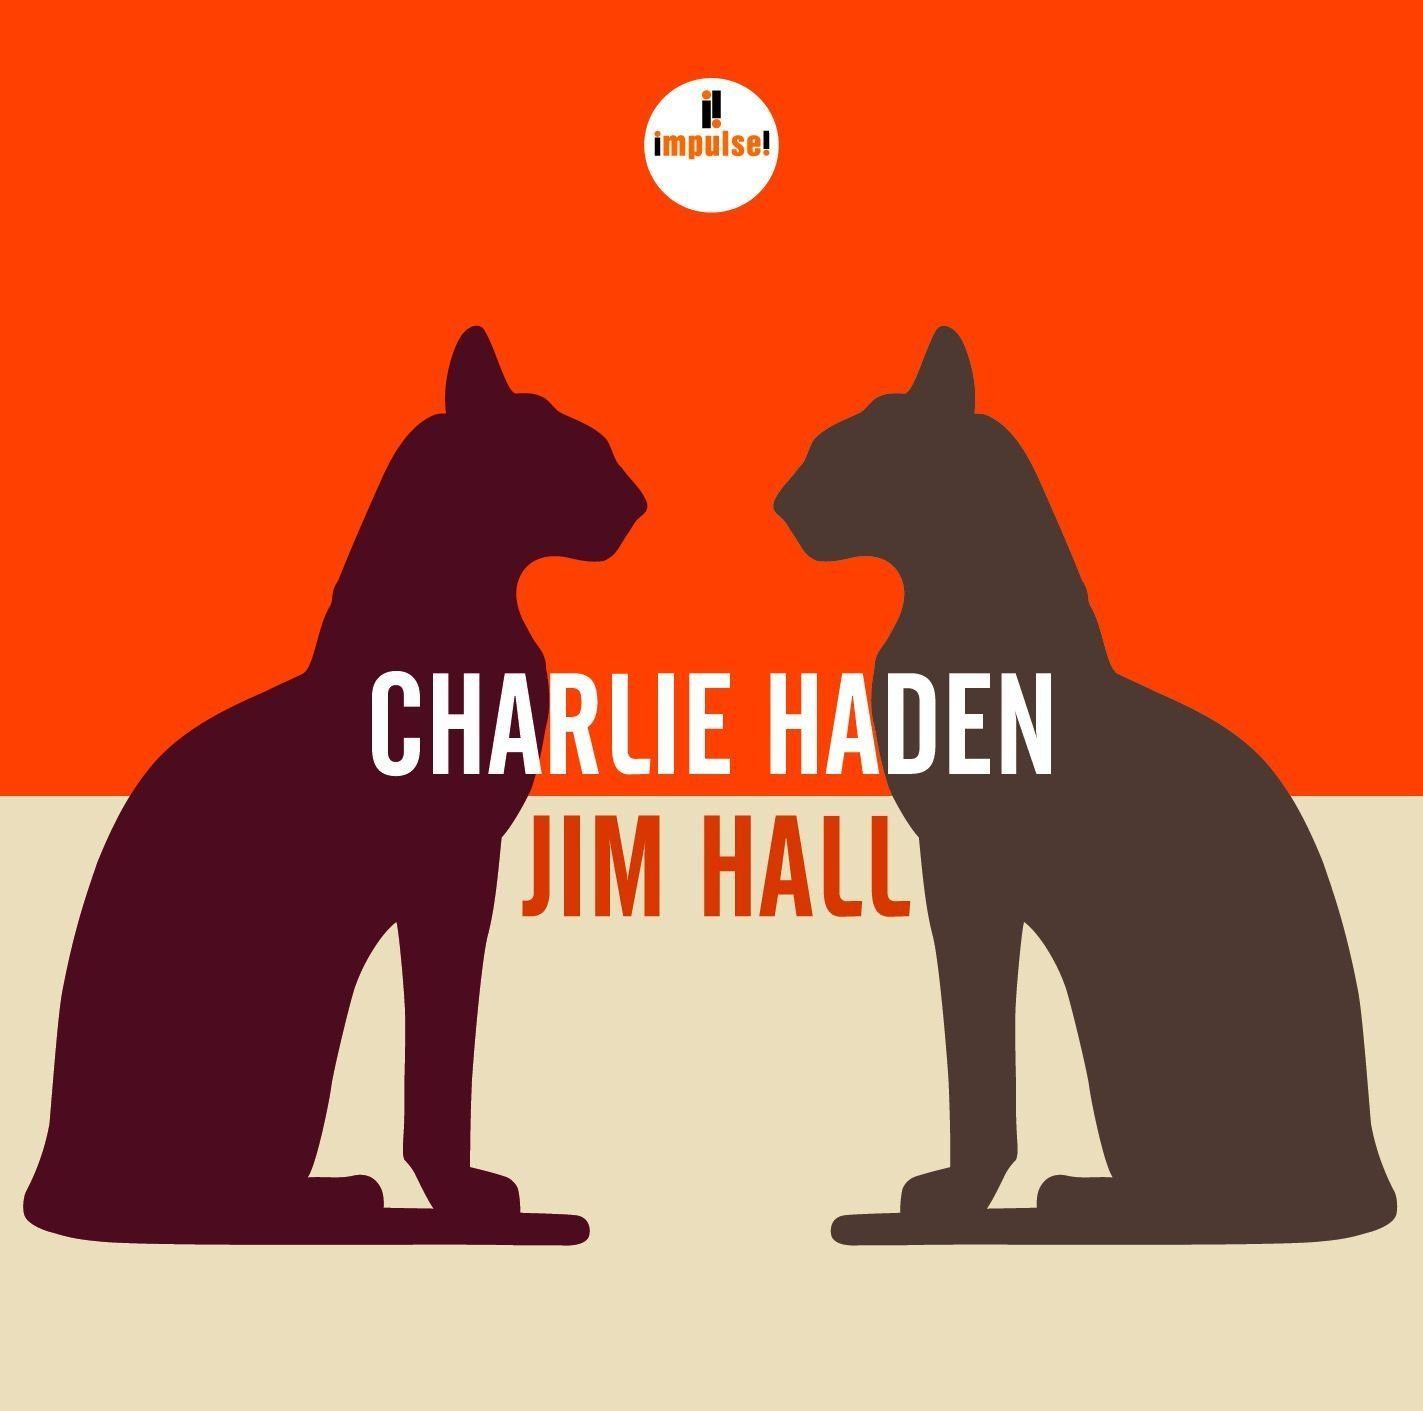 Charlie Haden & Jim Hall  - Charlie Haden - Jim Hall cover